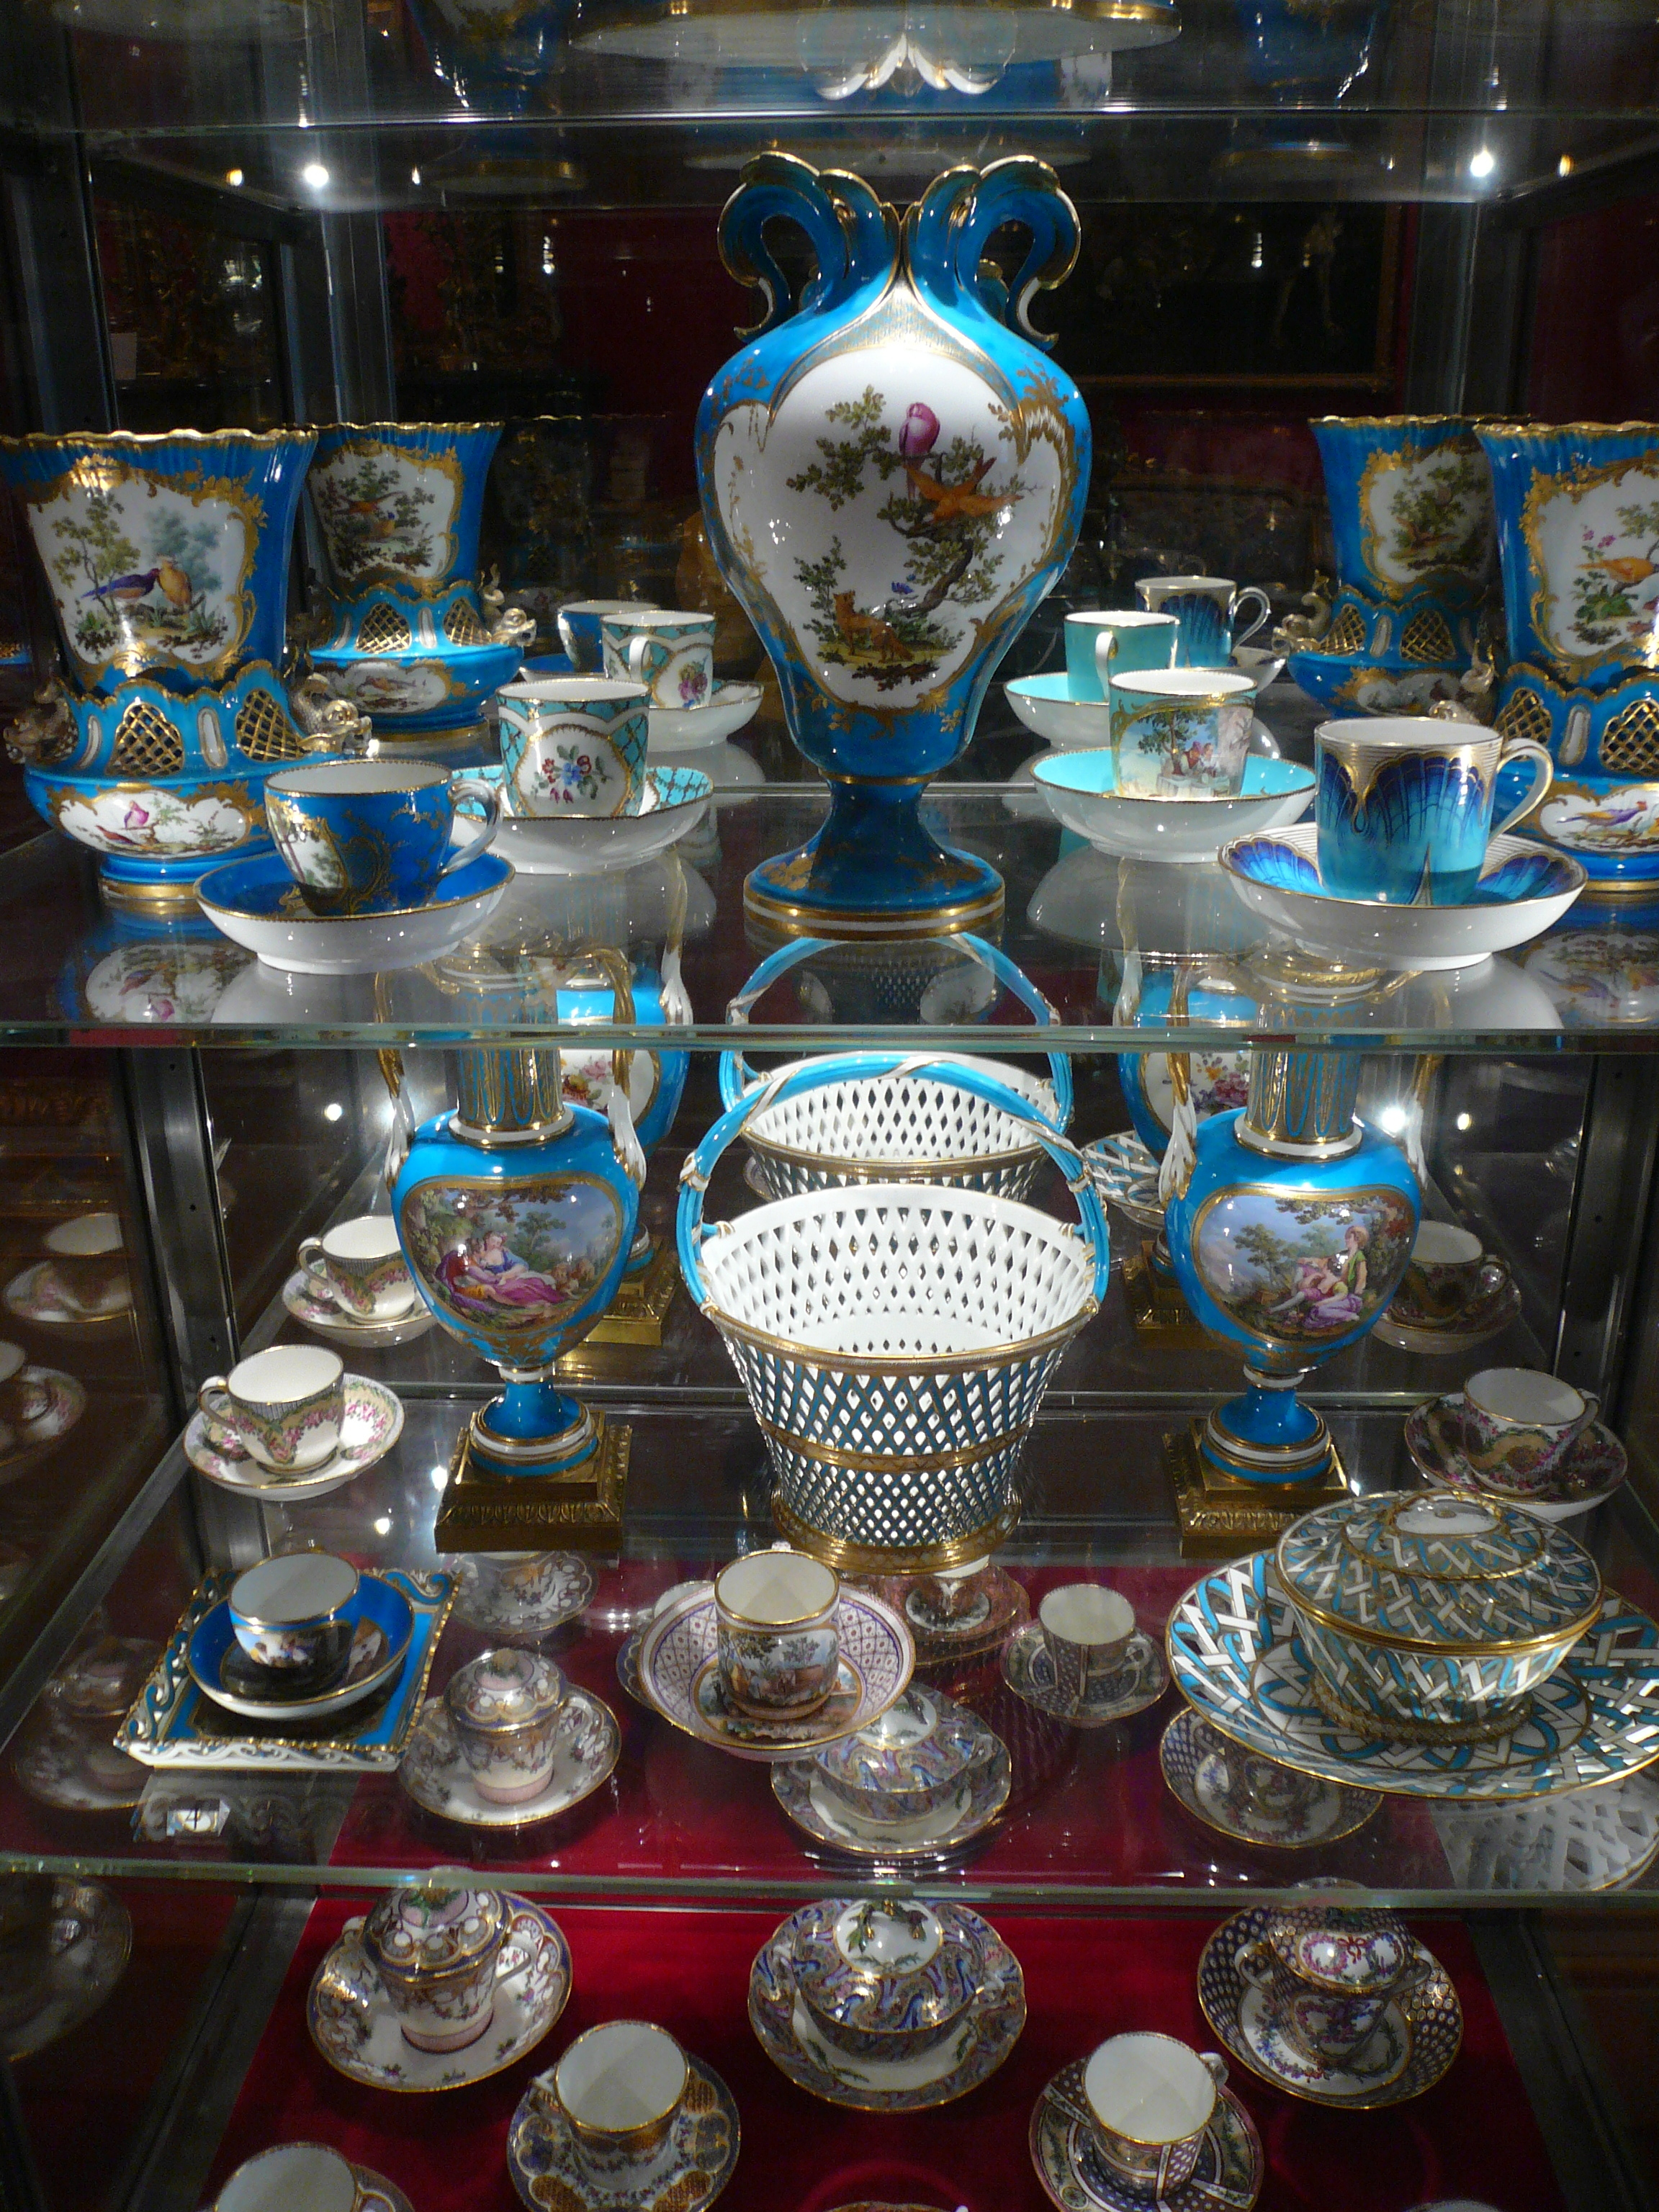 Sèvres porcelain in the Wallace Collection, London, May 2017, photograph author's own.